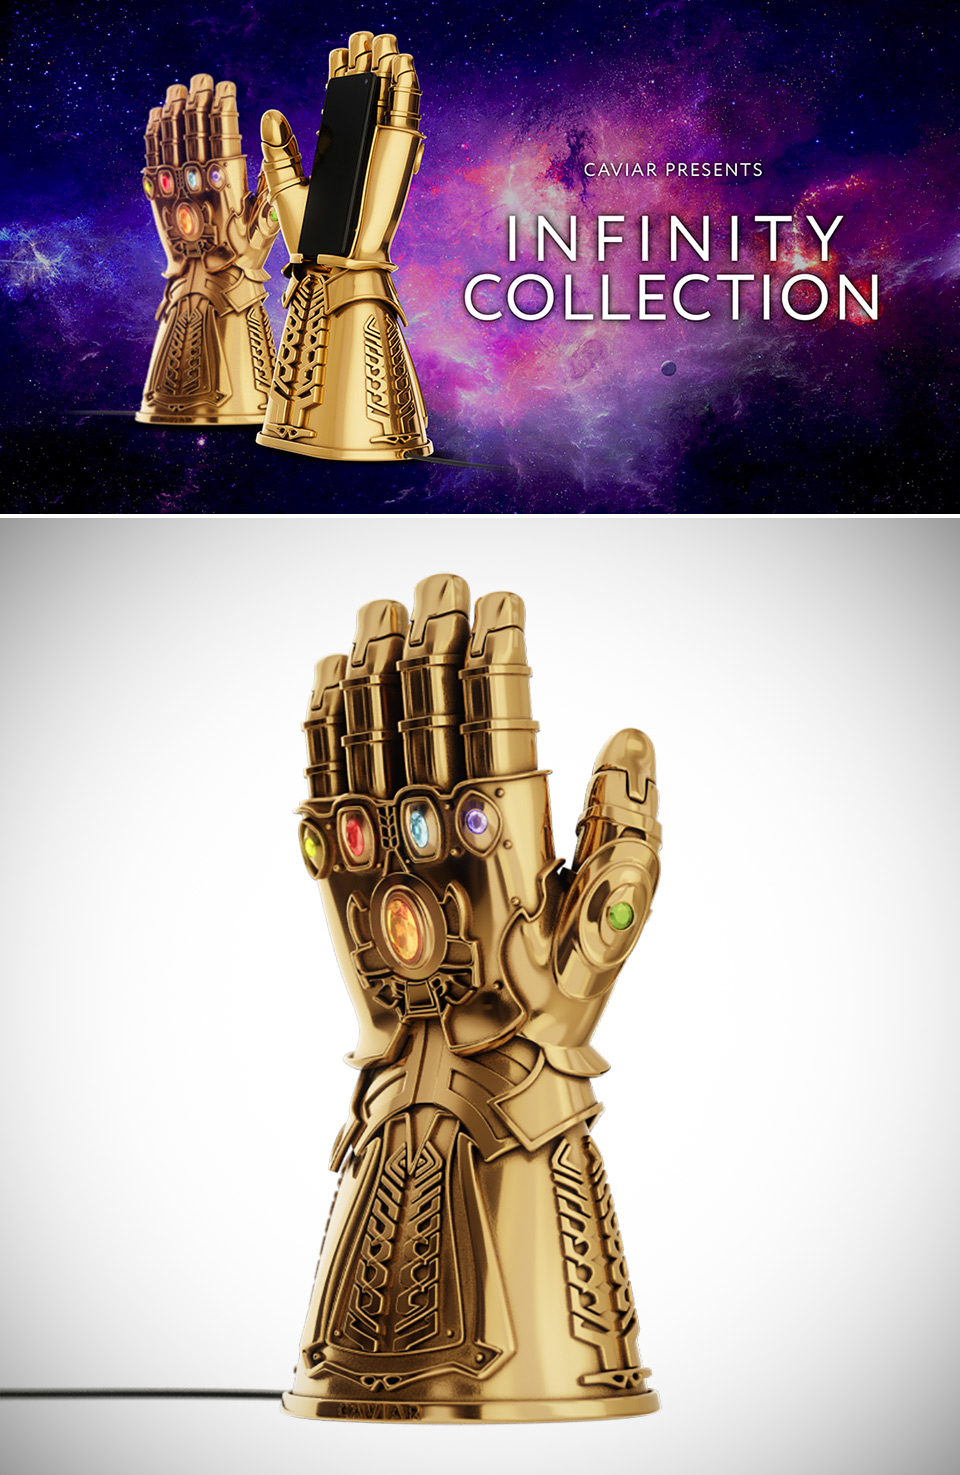 The Infinity Gauntlet Avengers Endgame Charger